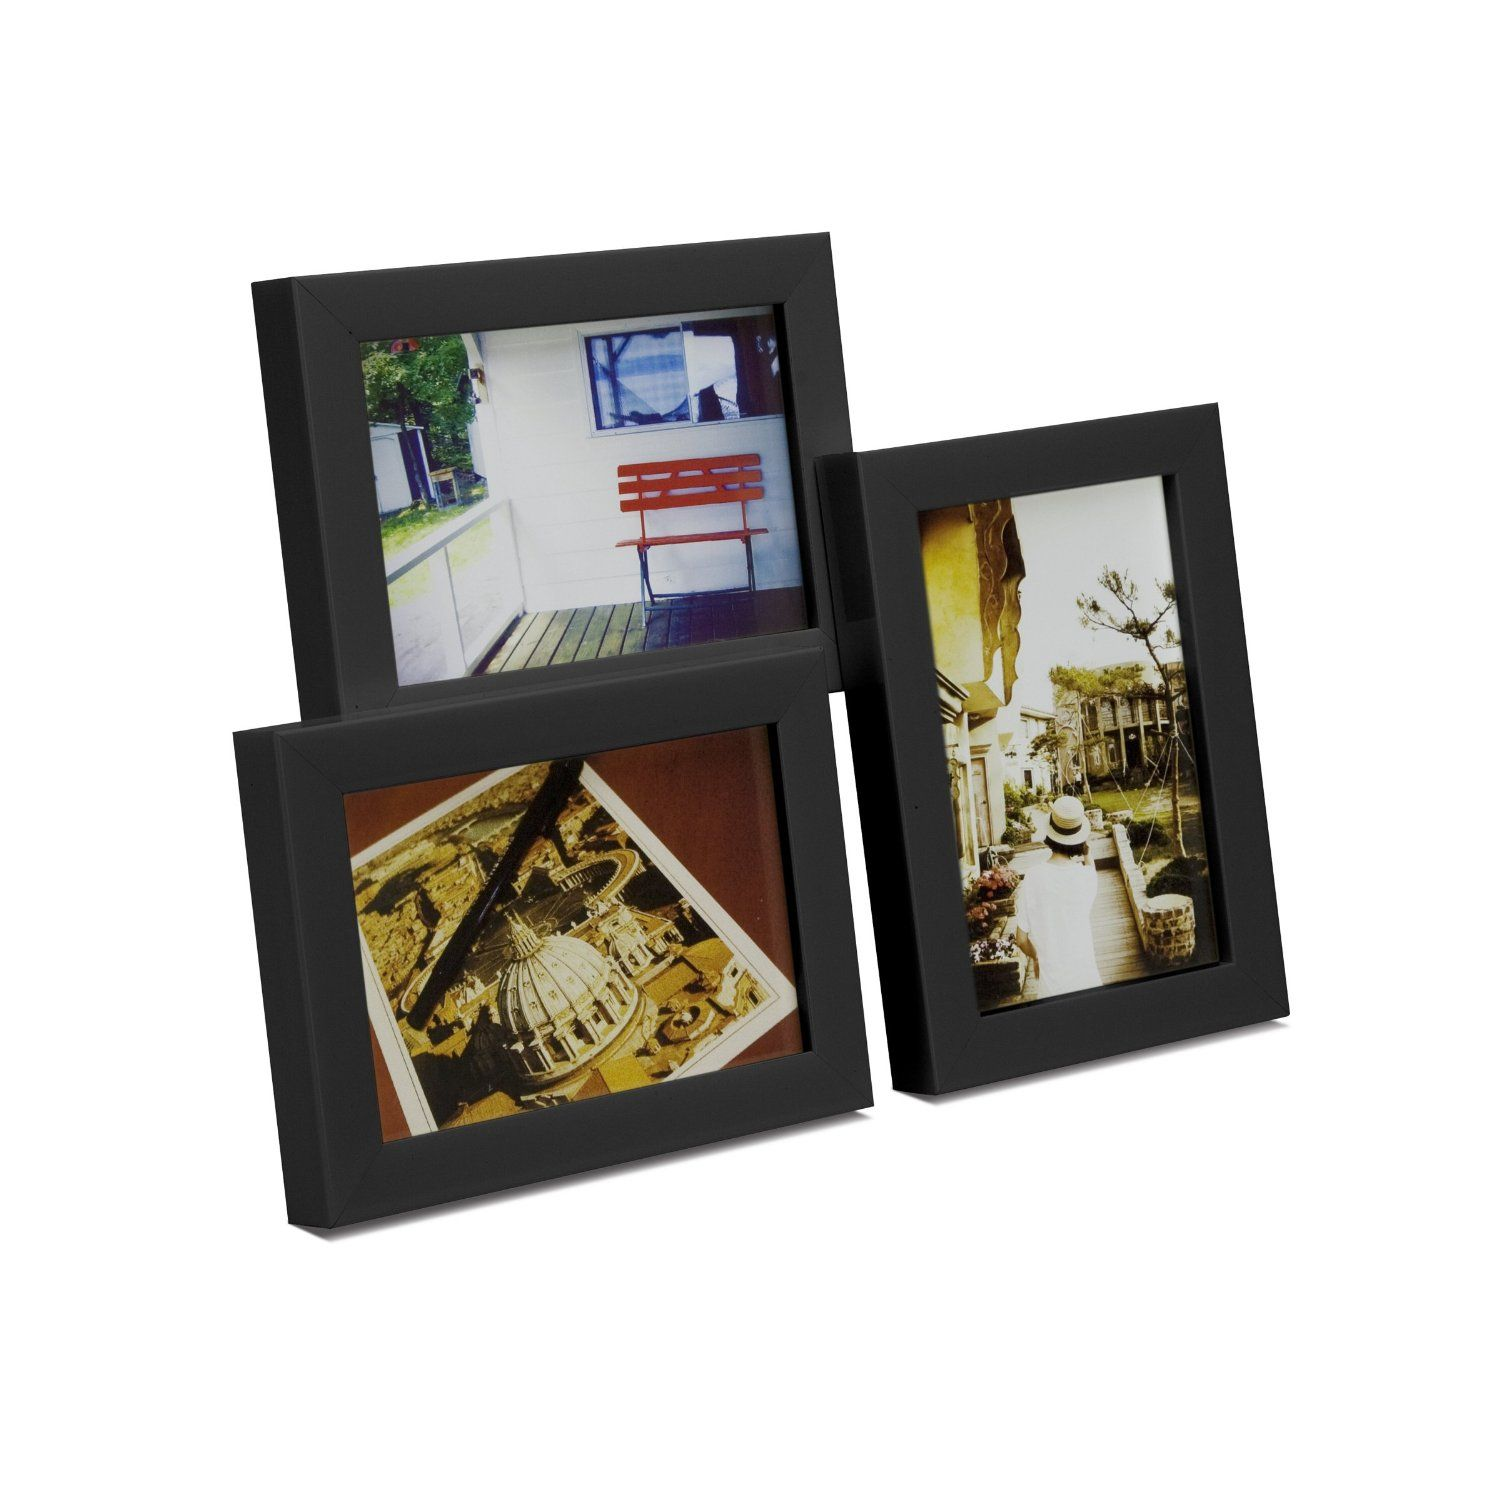 Umbra Tira ThreeOpening Collage Picture Frame